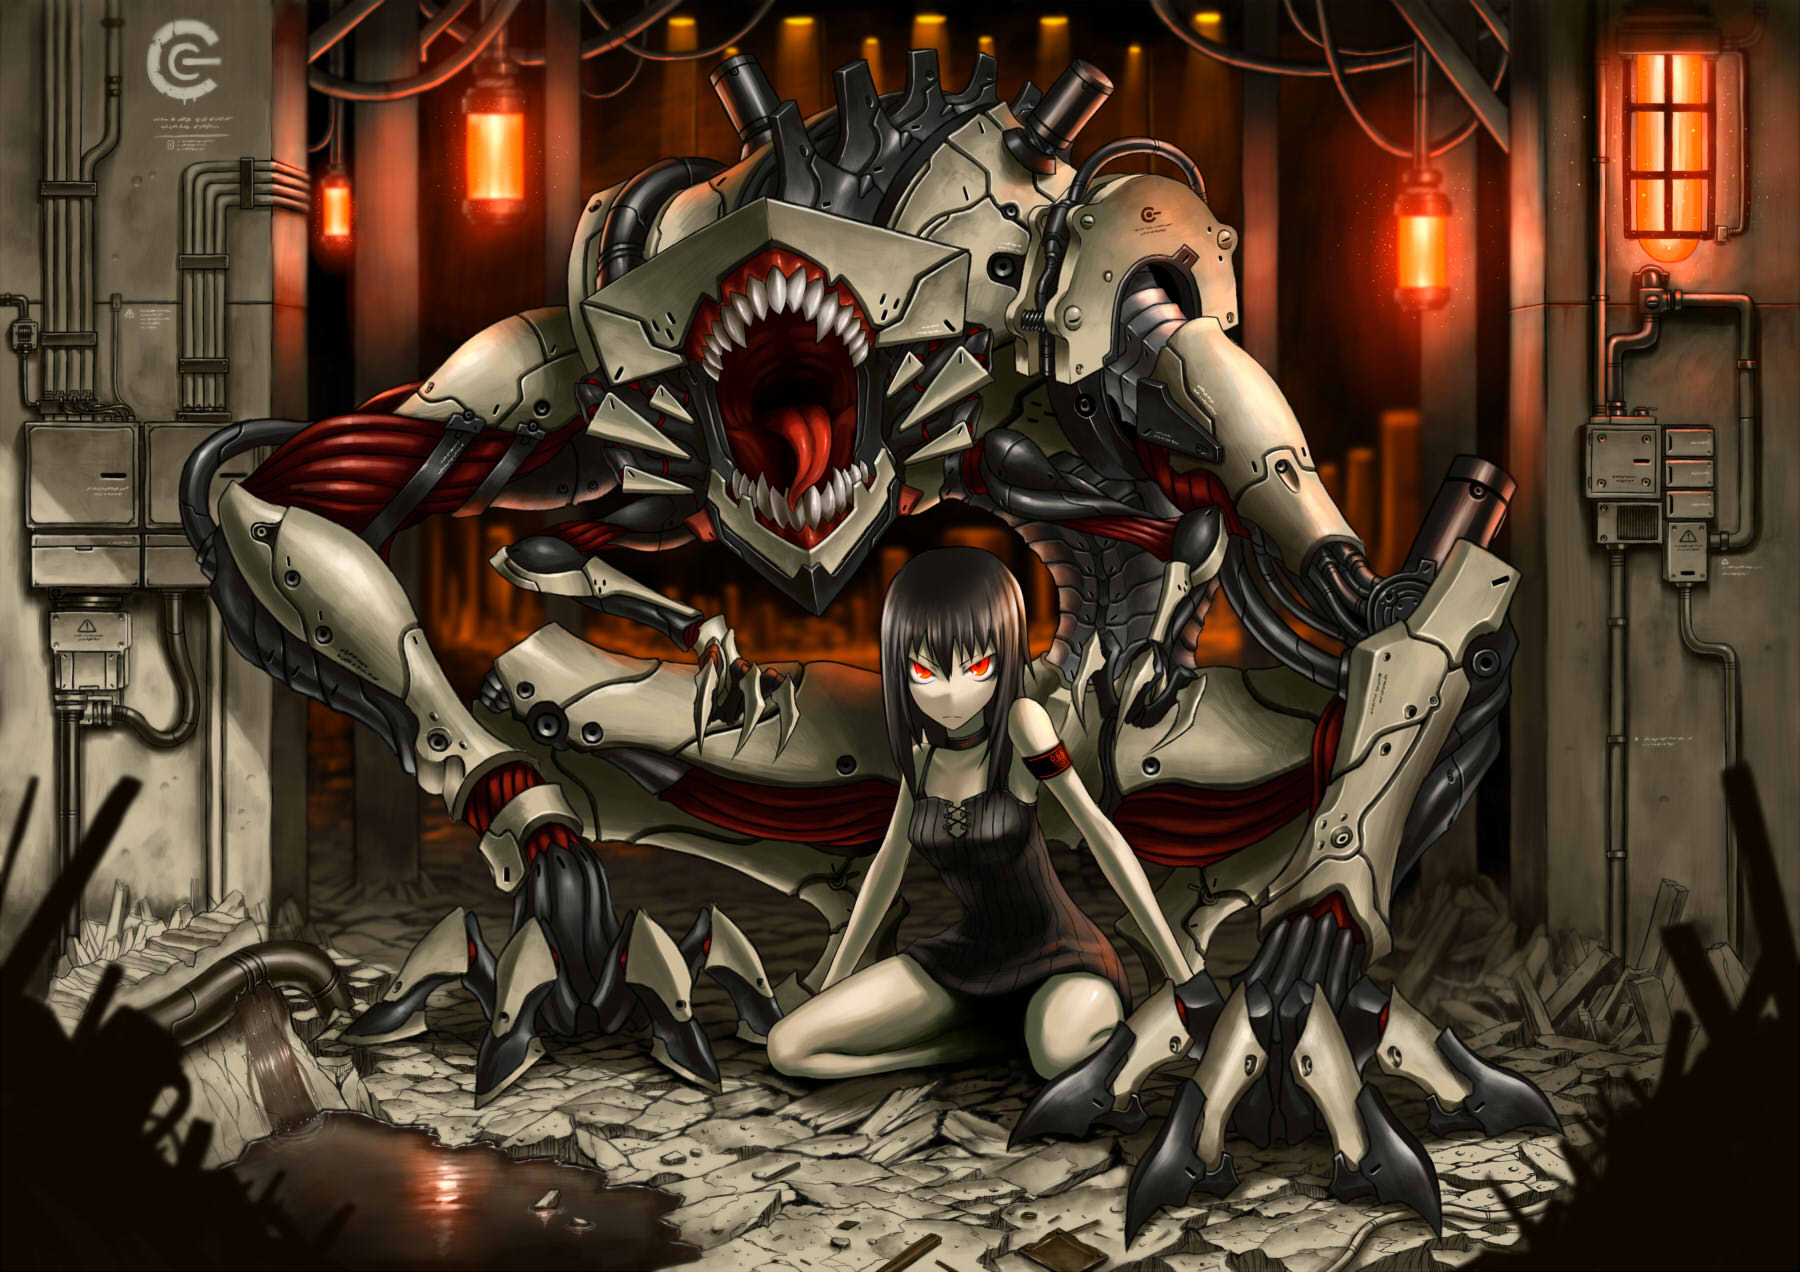 Add Media Report Rss Epic Original Art And Wallpapers By Gia View Original